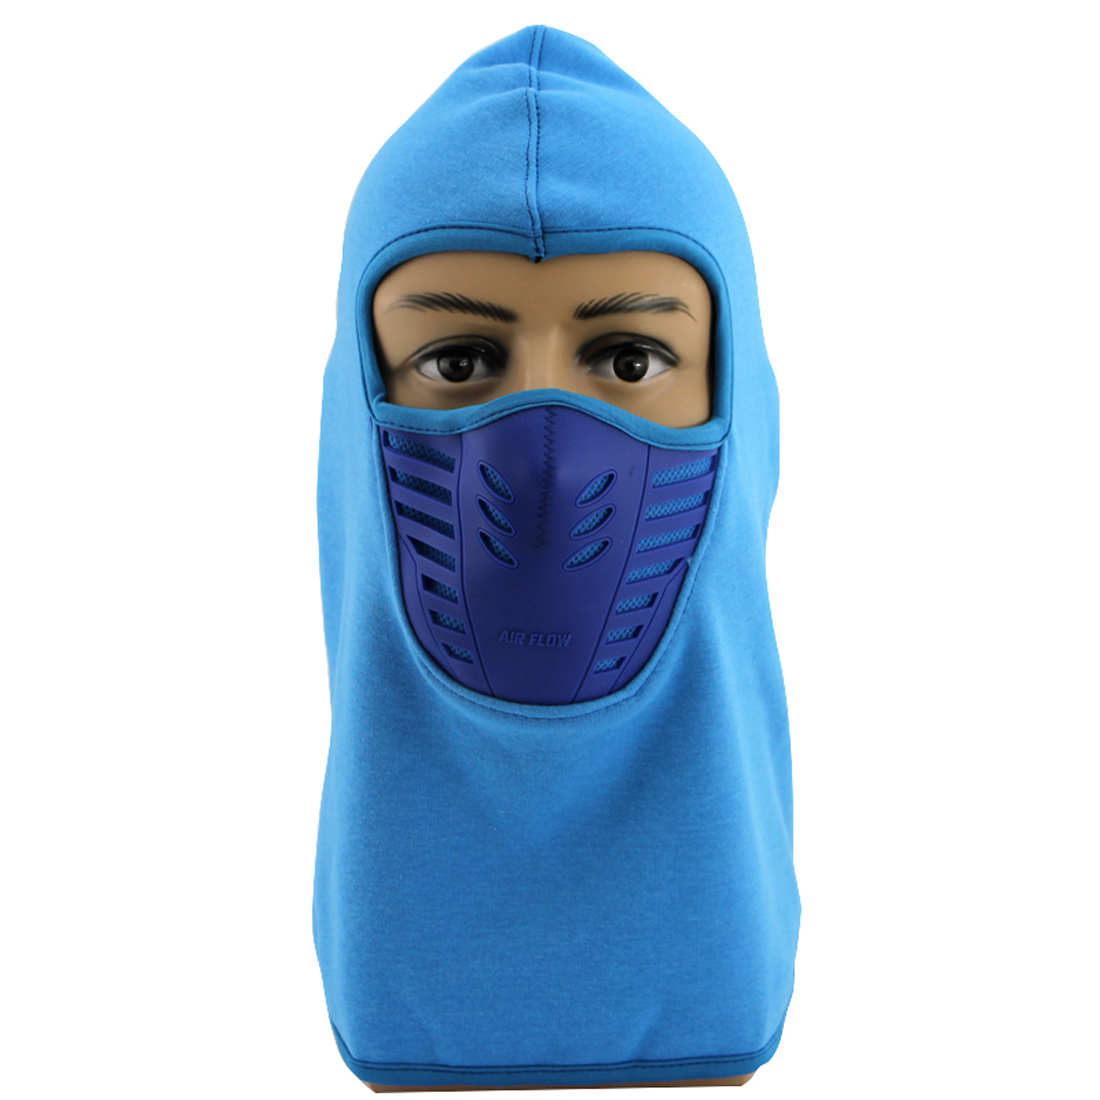 Balaclava Face Mask | Wind Resistant and Dust proof Winter Ski Mask Hoodie Style Blue by